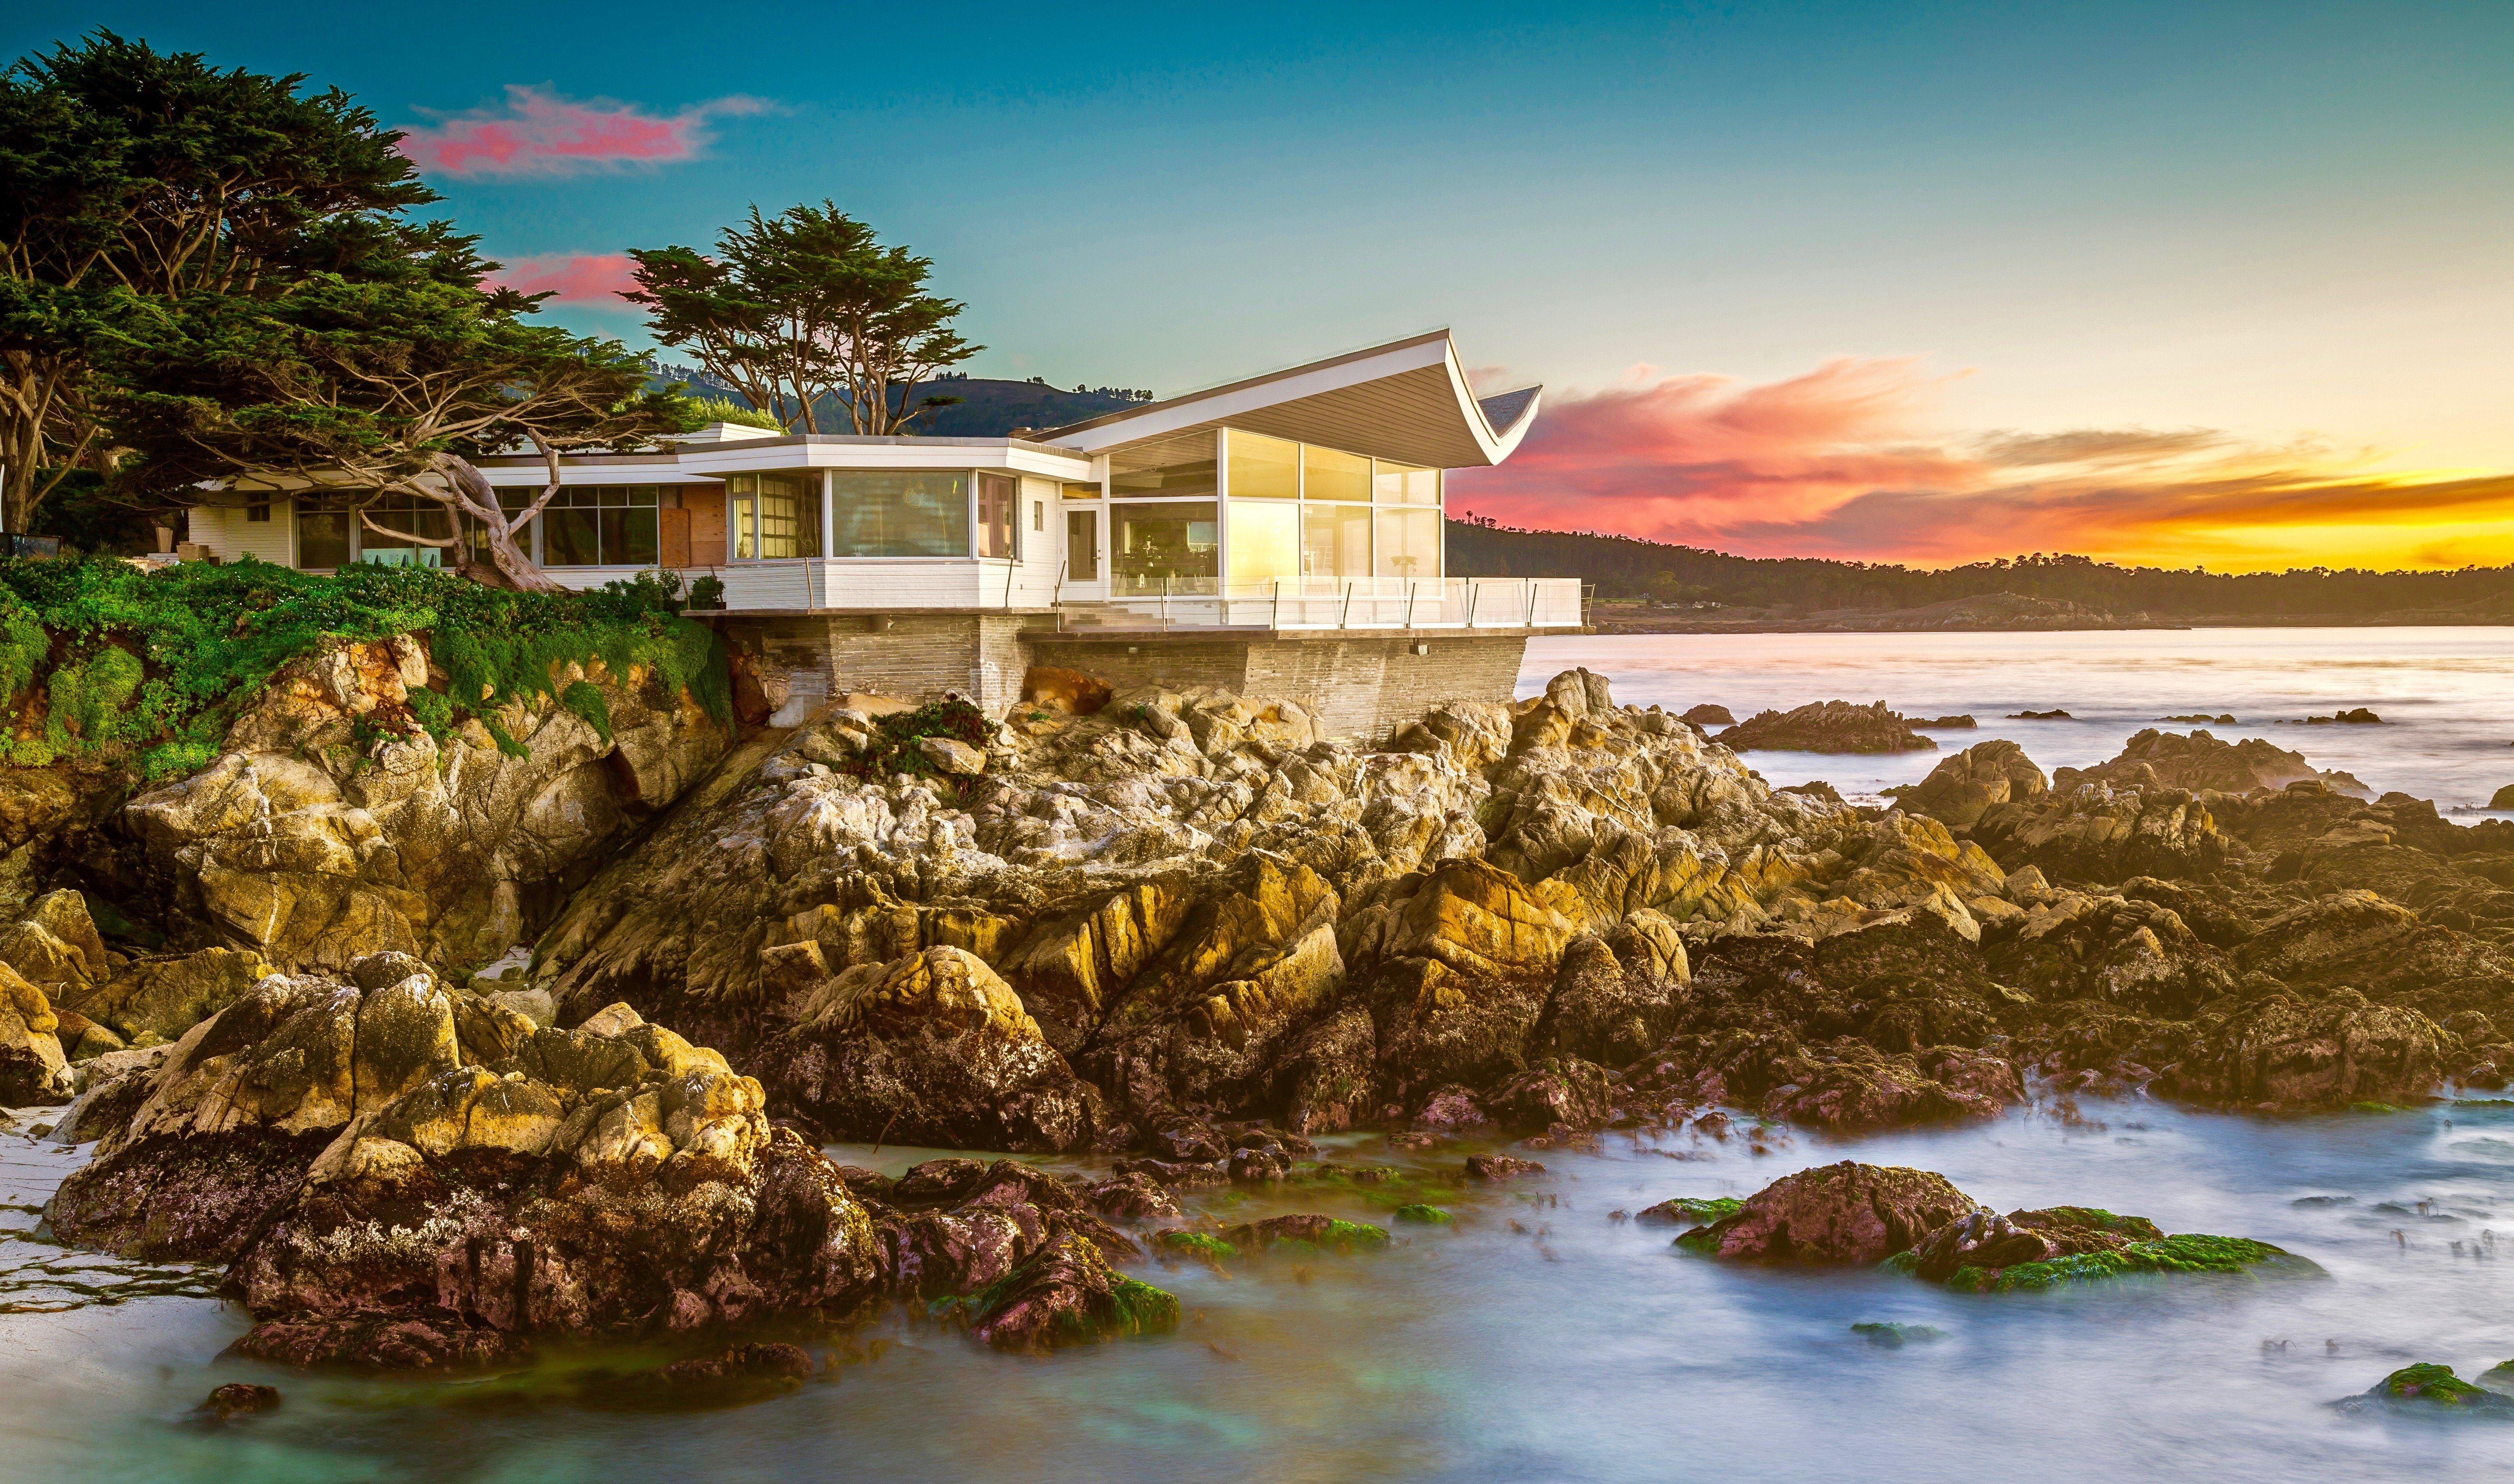 The Butterfly House sits on the rocks as the Pacific ocean waves crash on the rocky beach coast in Carmel California.